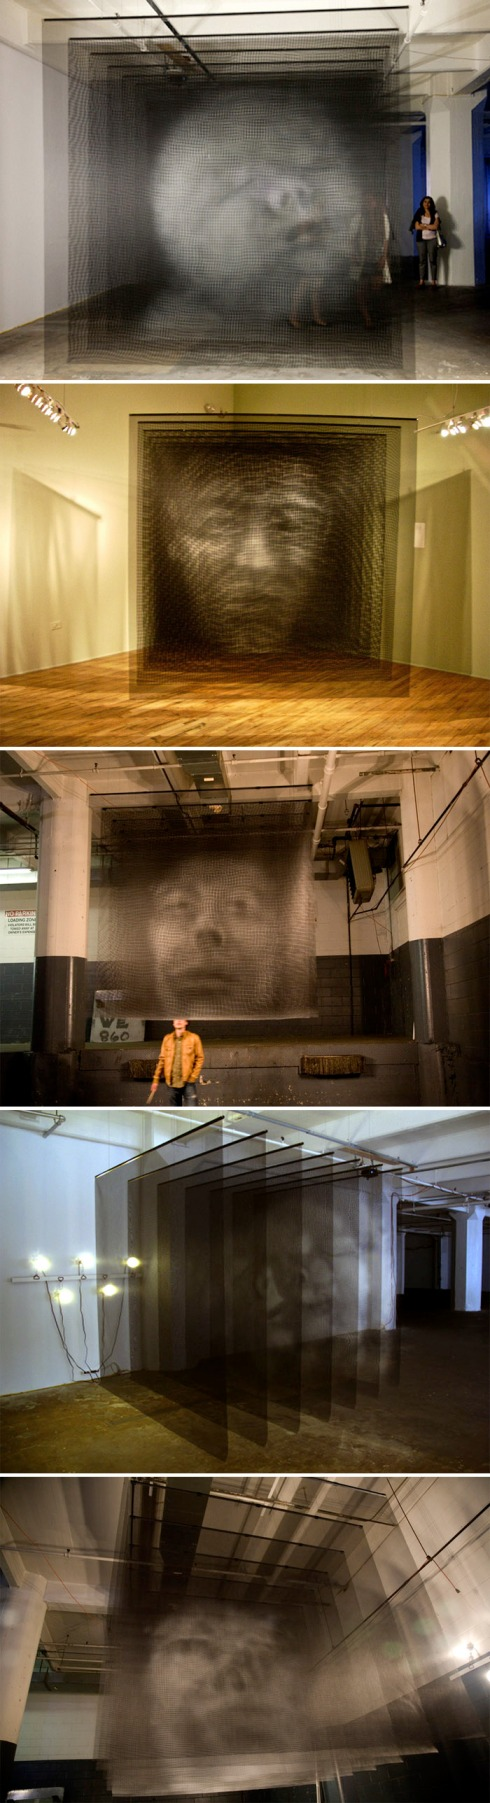 Sculpture, multi-screen, multi-dimensional heads, mesh sheets, Brooklyn artist